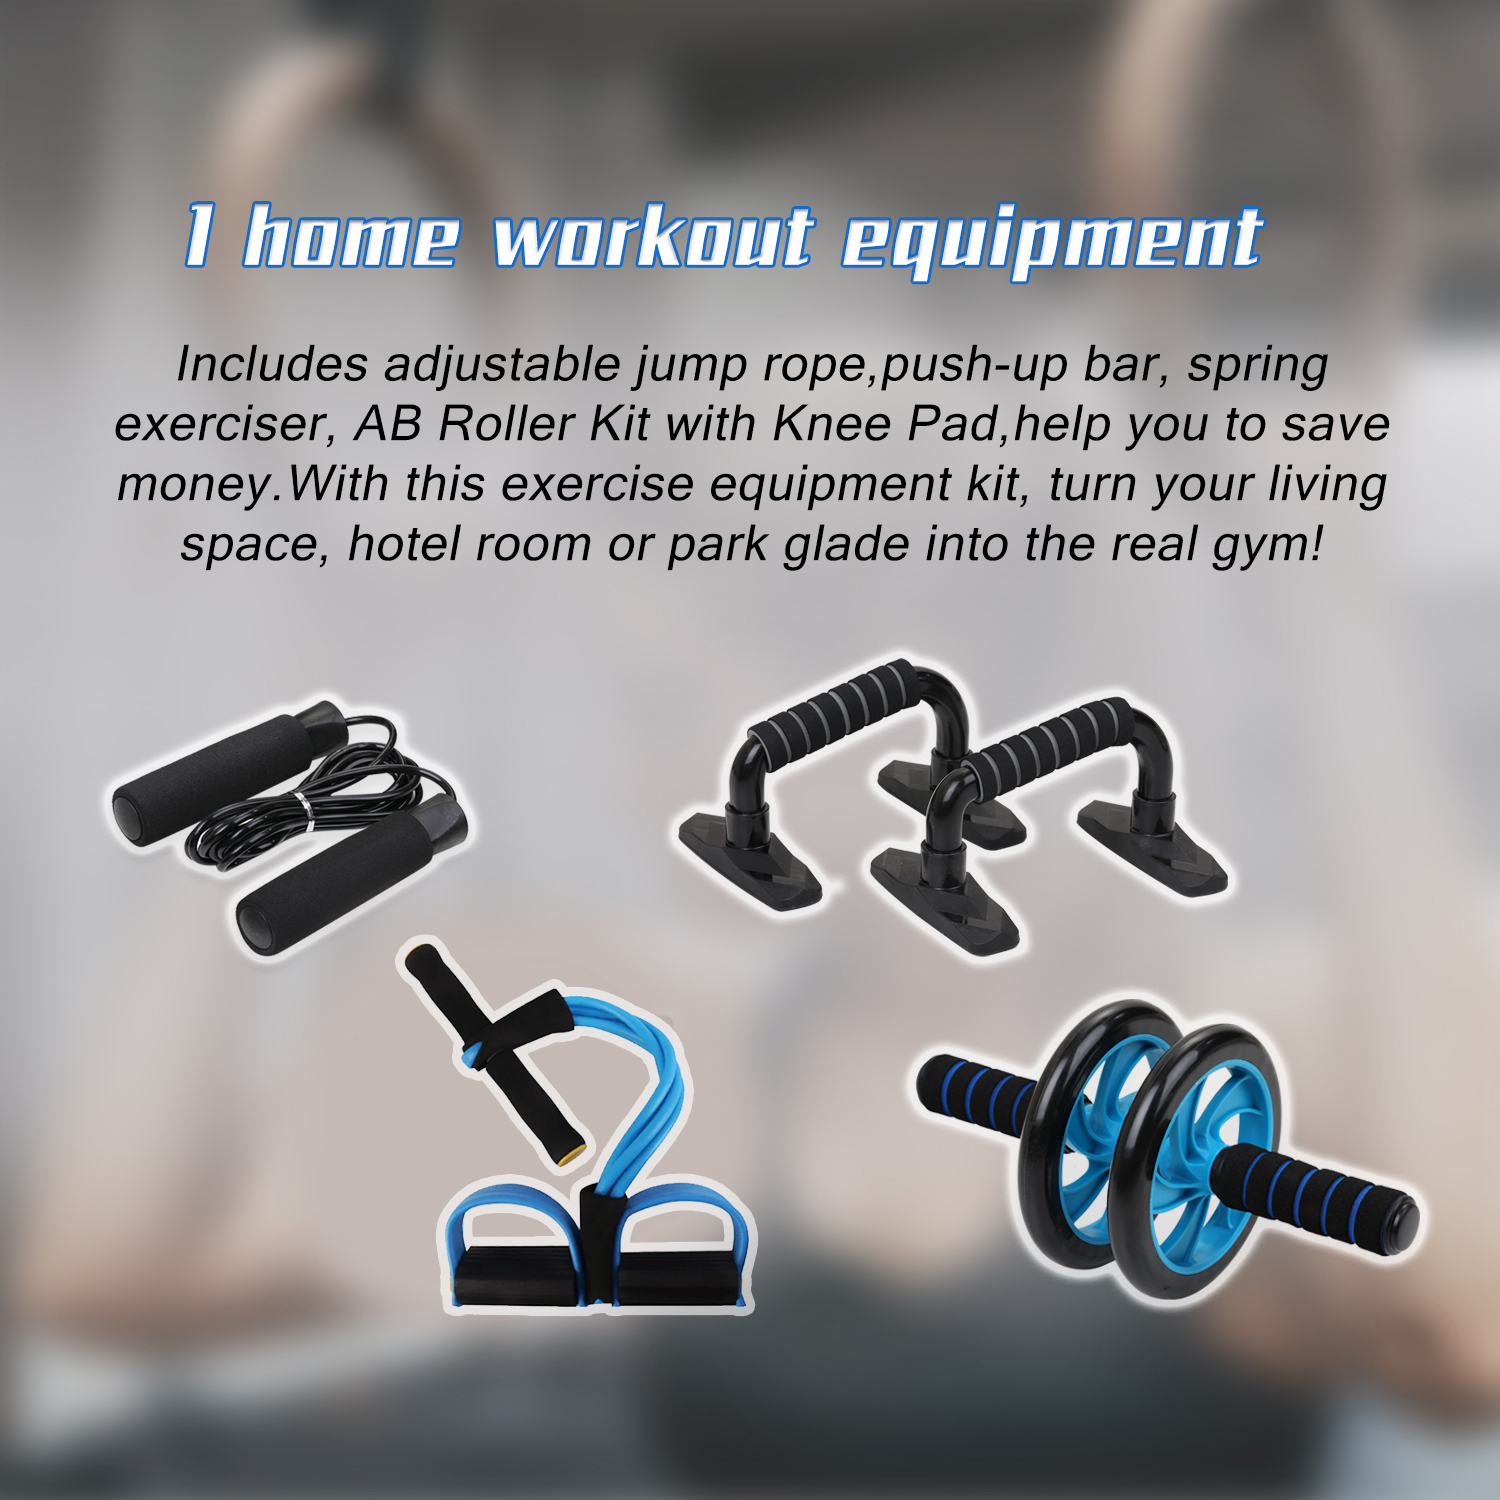 H05b850969dbc4057b2ec38cbbf3d2144D - 5-in-1 AB Roller Kit Abdominal Press Wheel Pro with Push-UP Bar Jump Rope Knee Pad Gym Home Exercise  Fitness Equipment